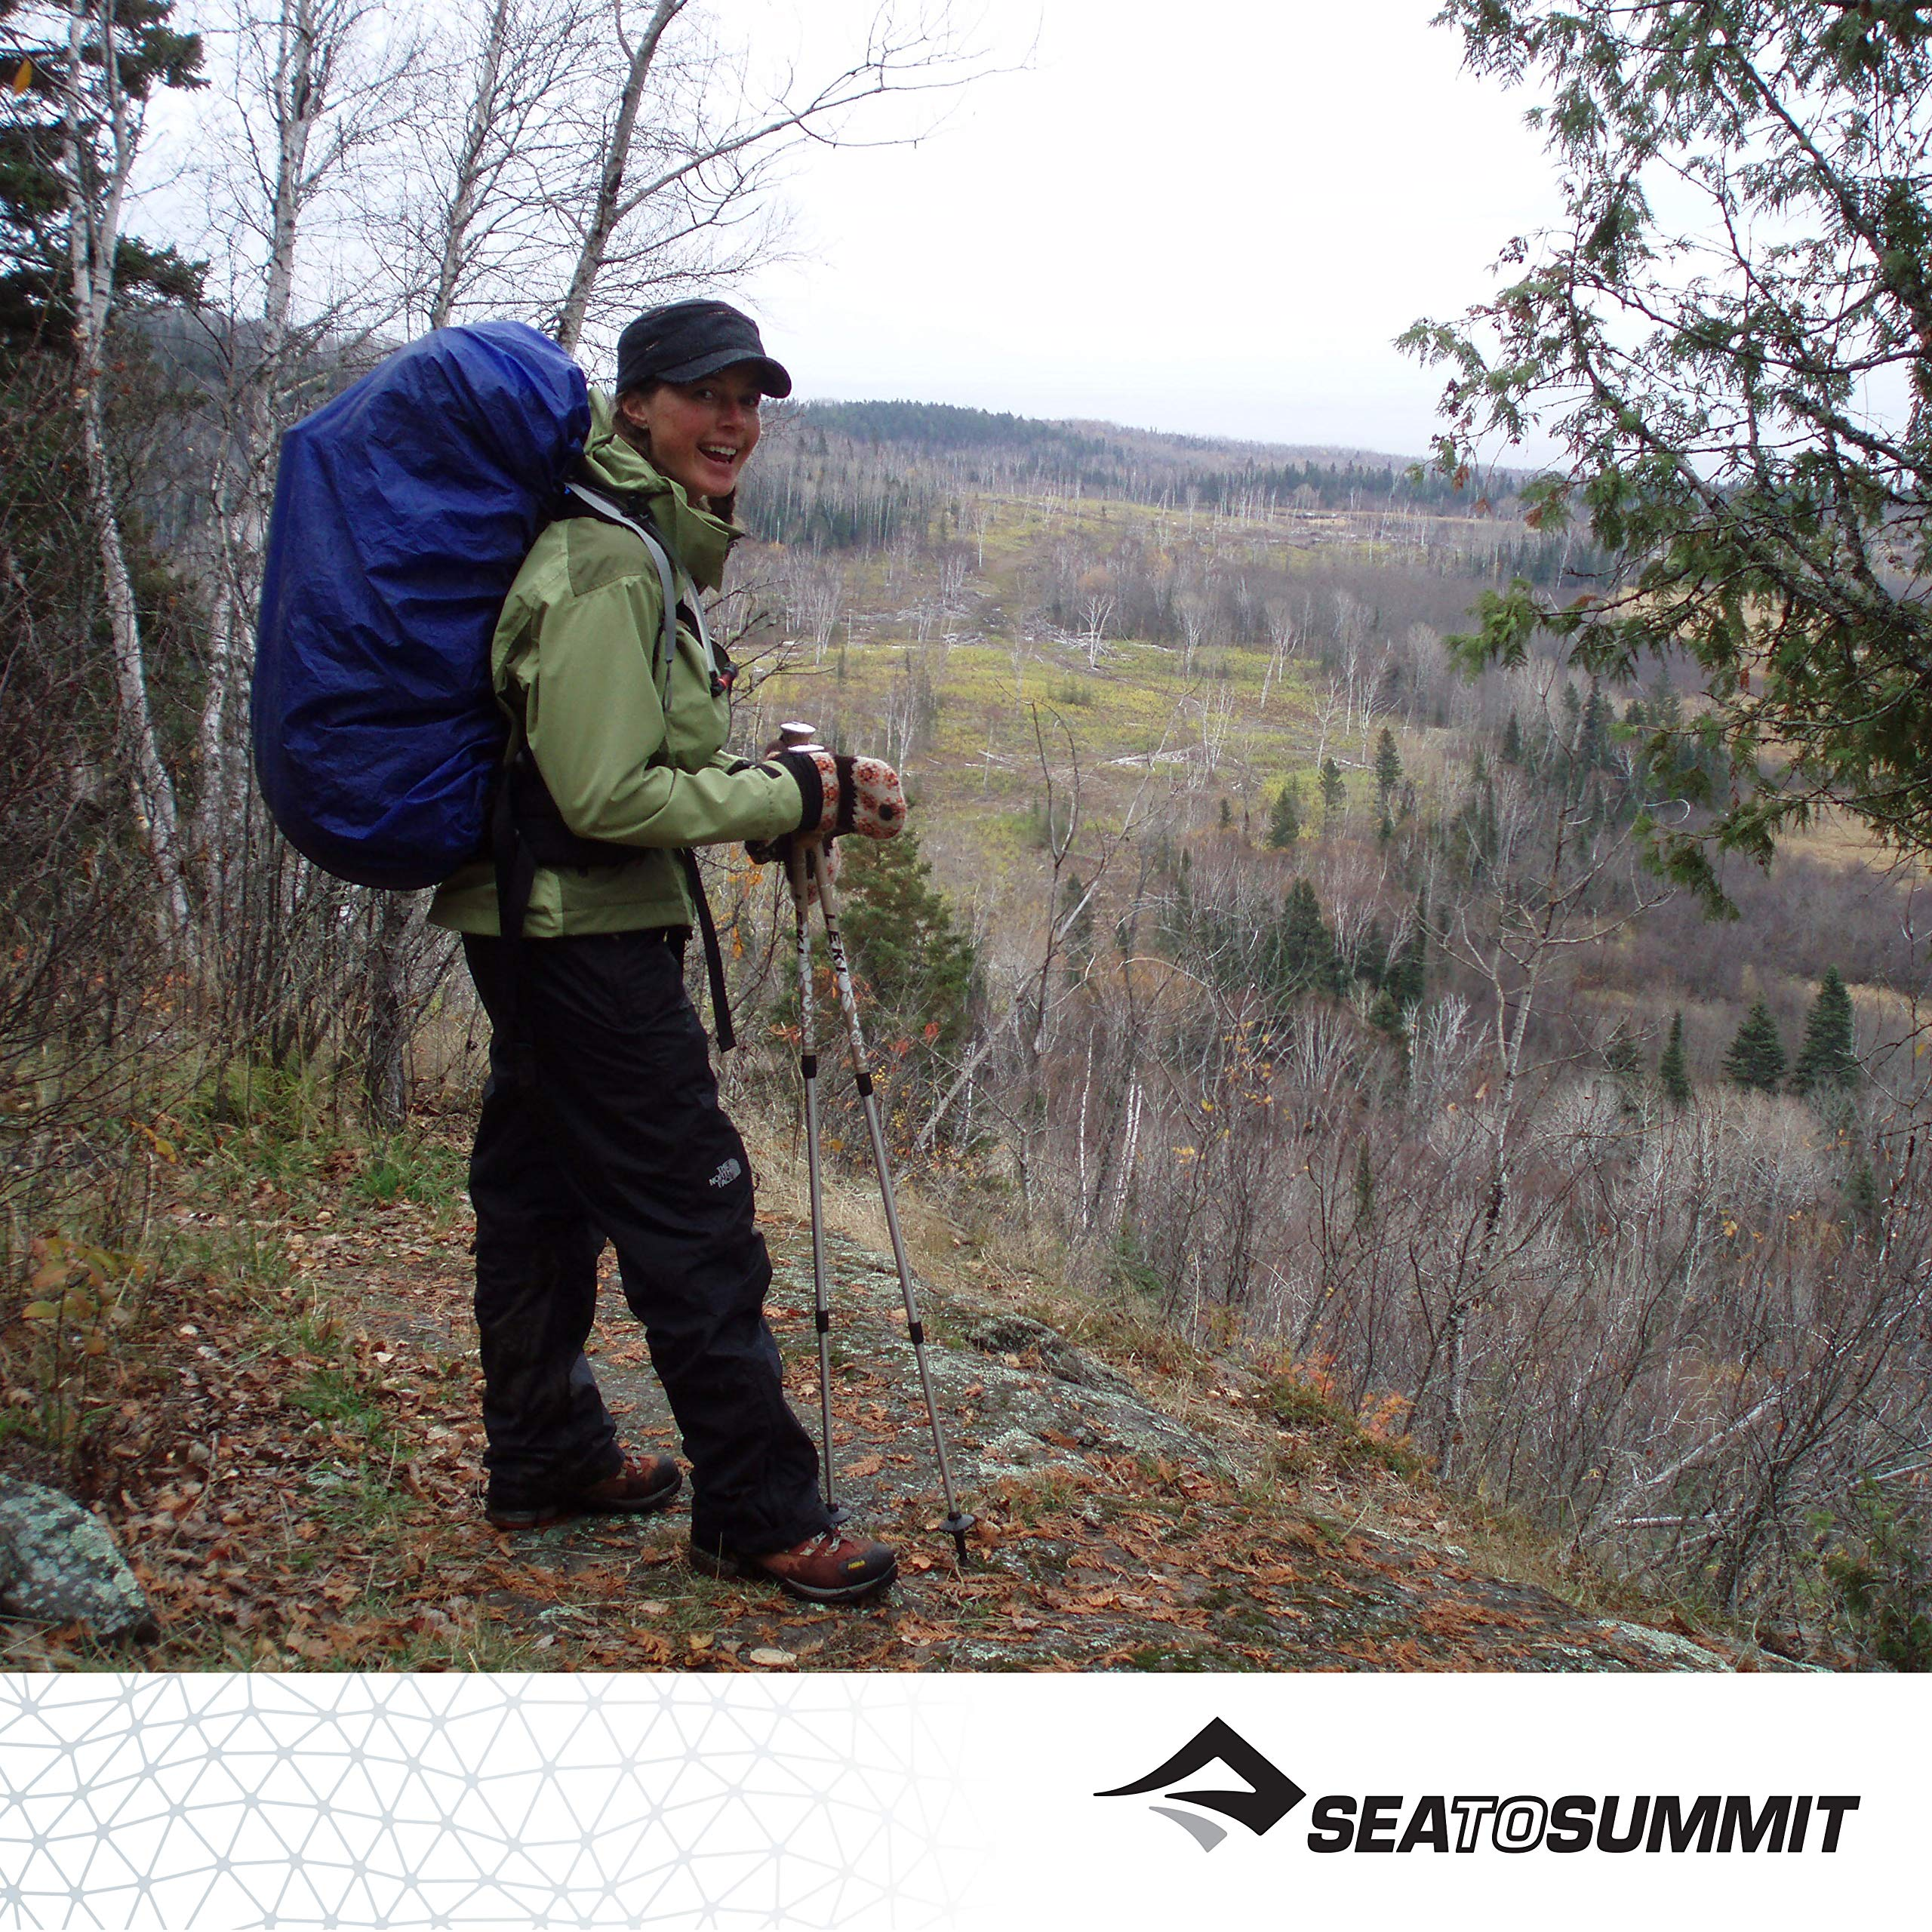 Sea to Summit Ultra-SIL Pack Cover, Forest Green, Medium by Sea to Summit